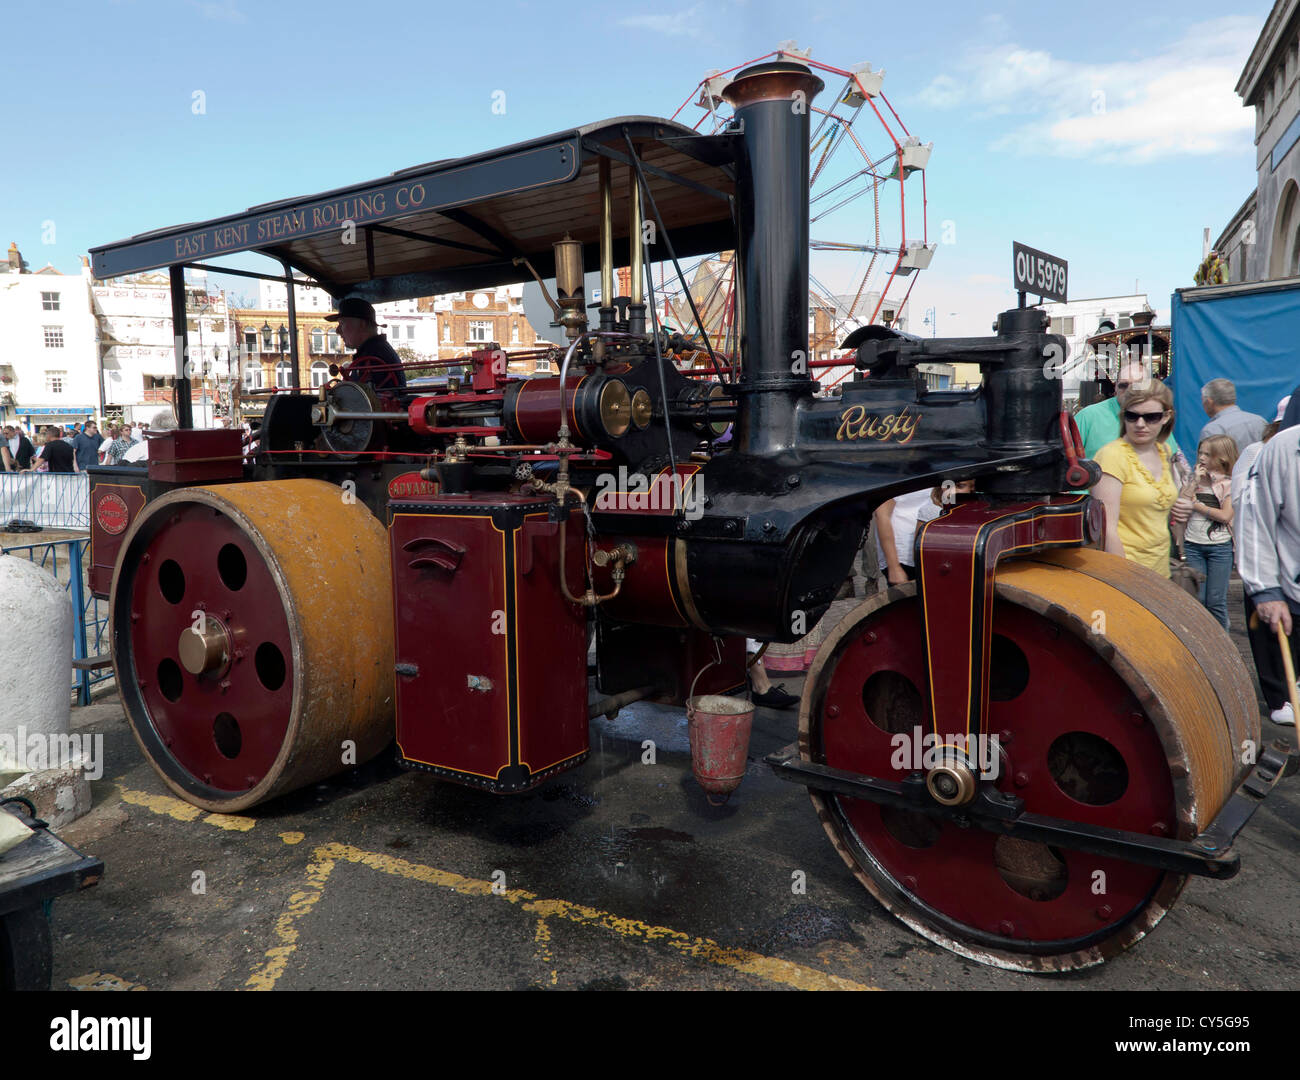 View of a 1930 Wallis & Steevens 'Advance'  Steam Road Roller on display at the Ramsgate Harbour Steam event. - Stock Image